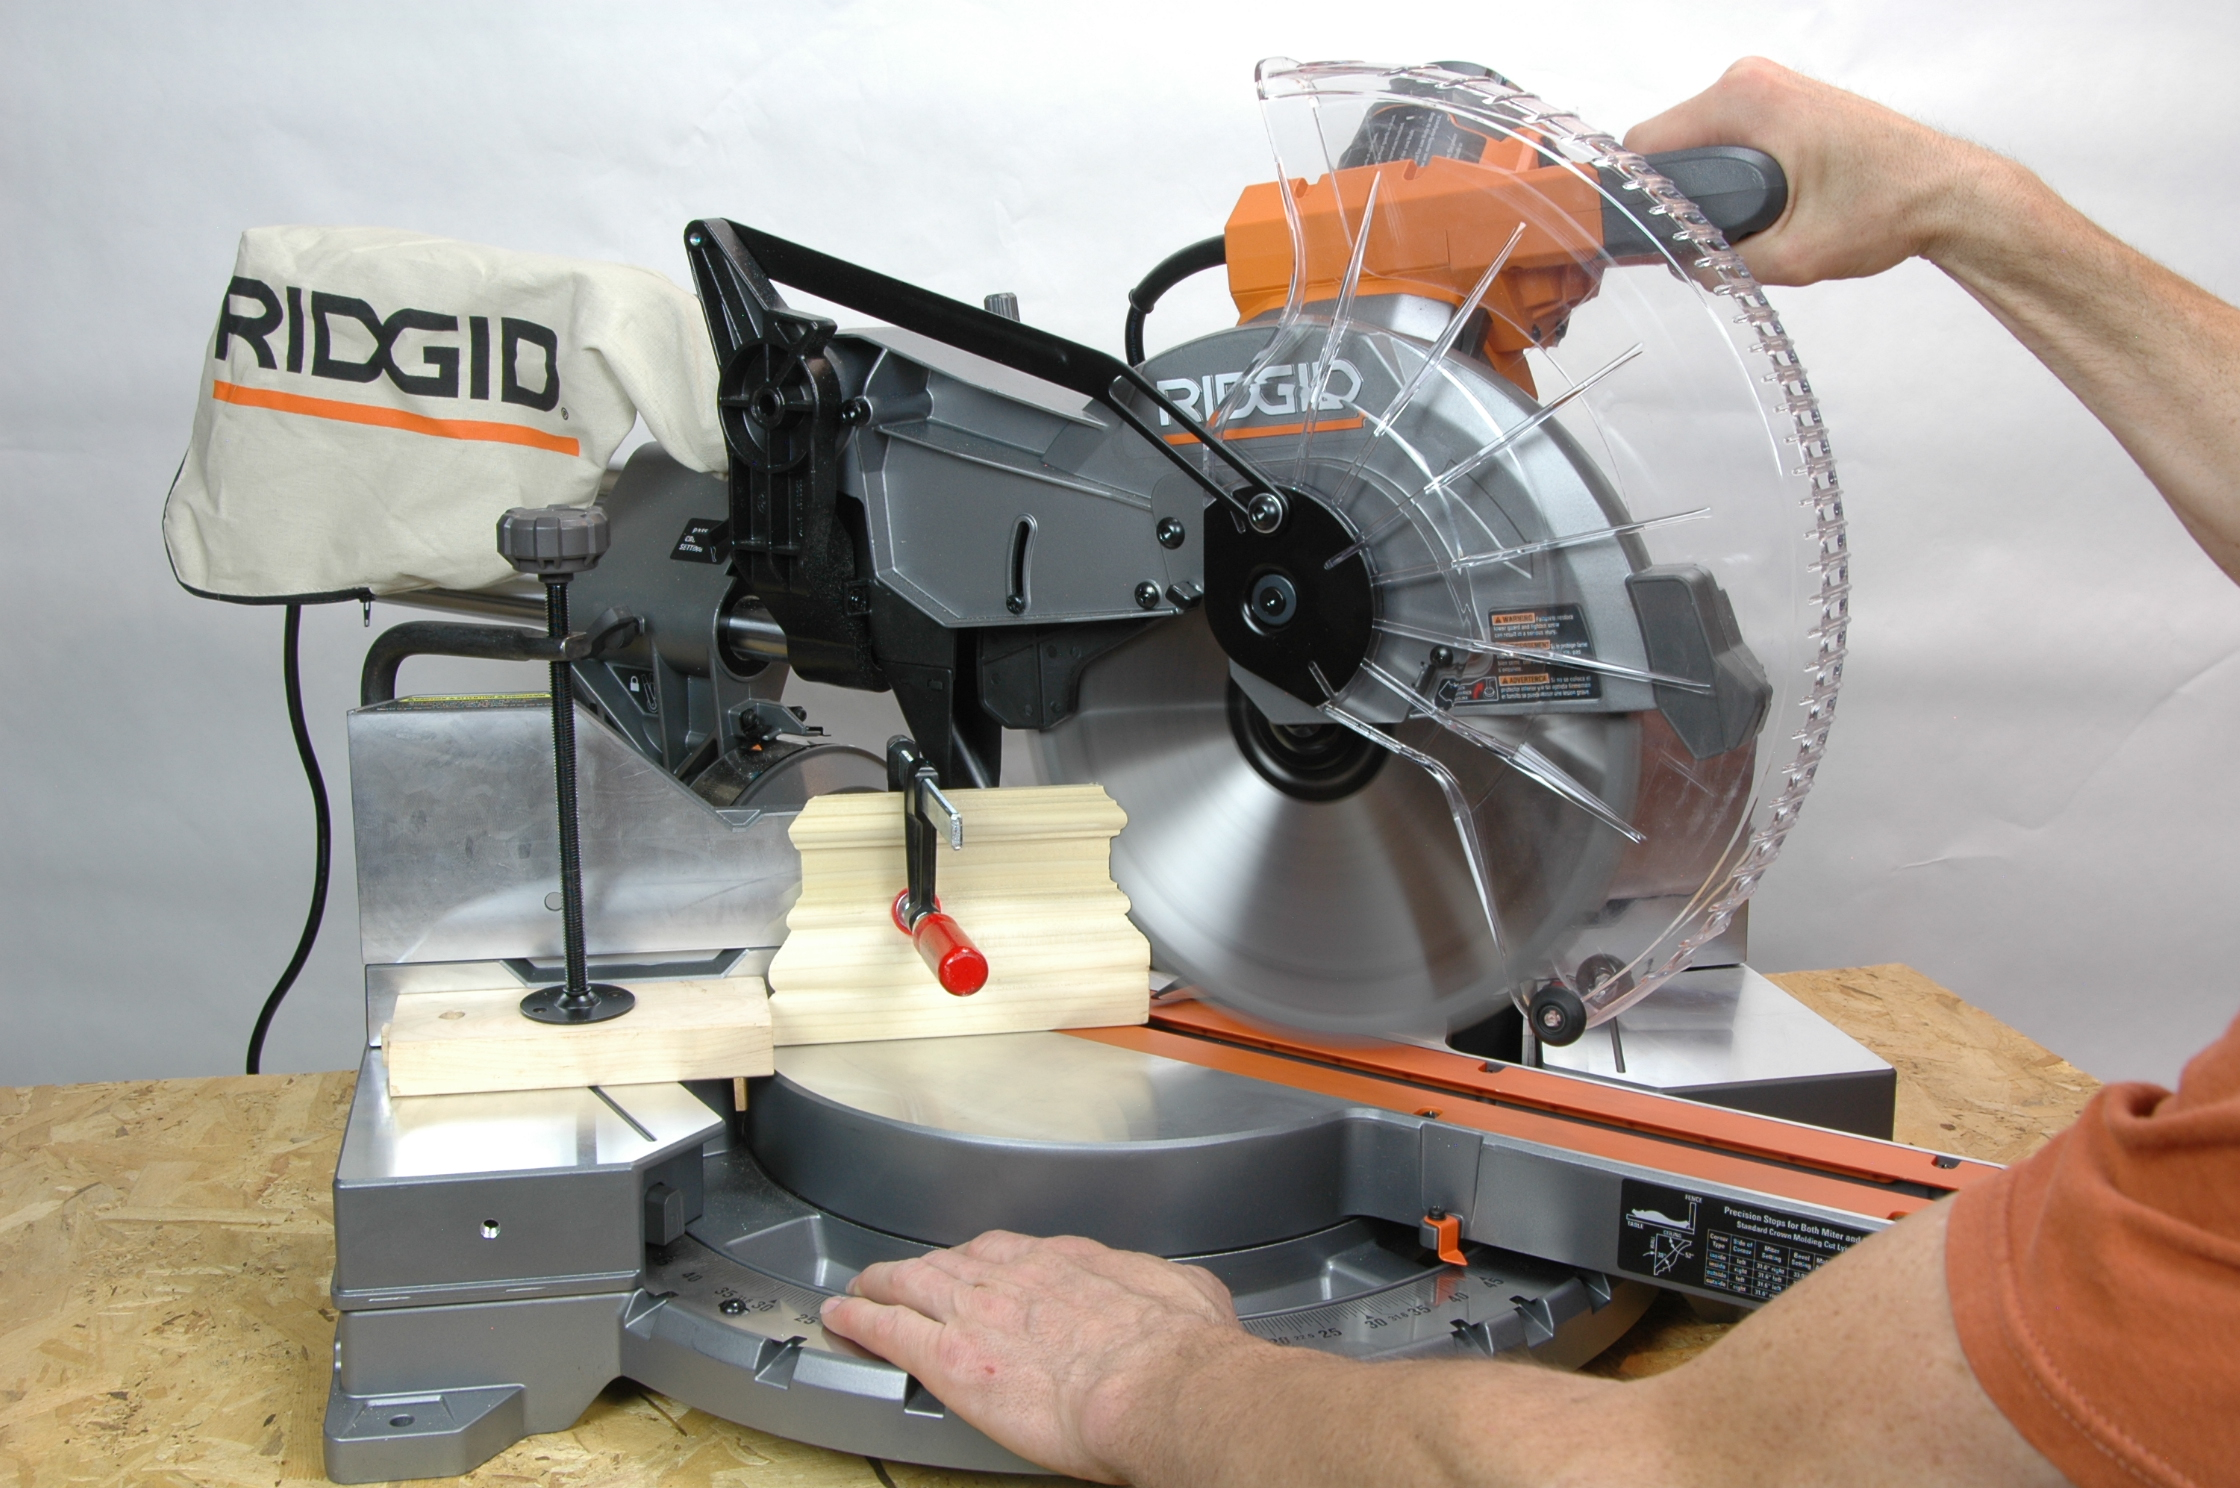 Power tool safety tips for table saws